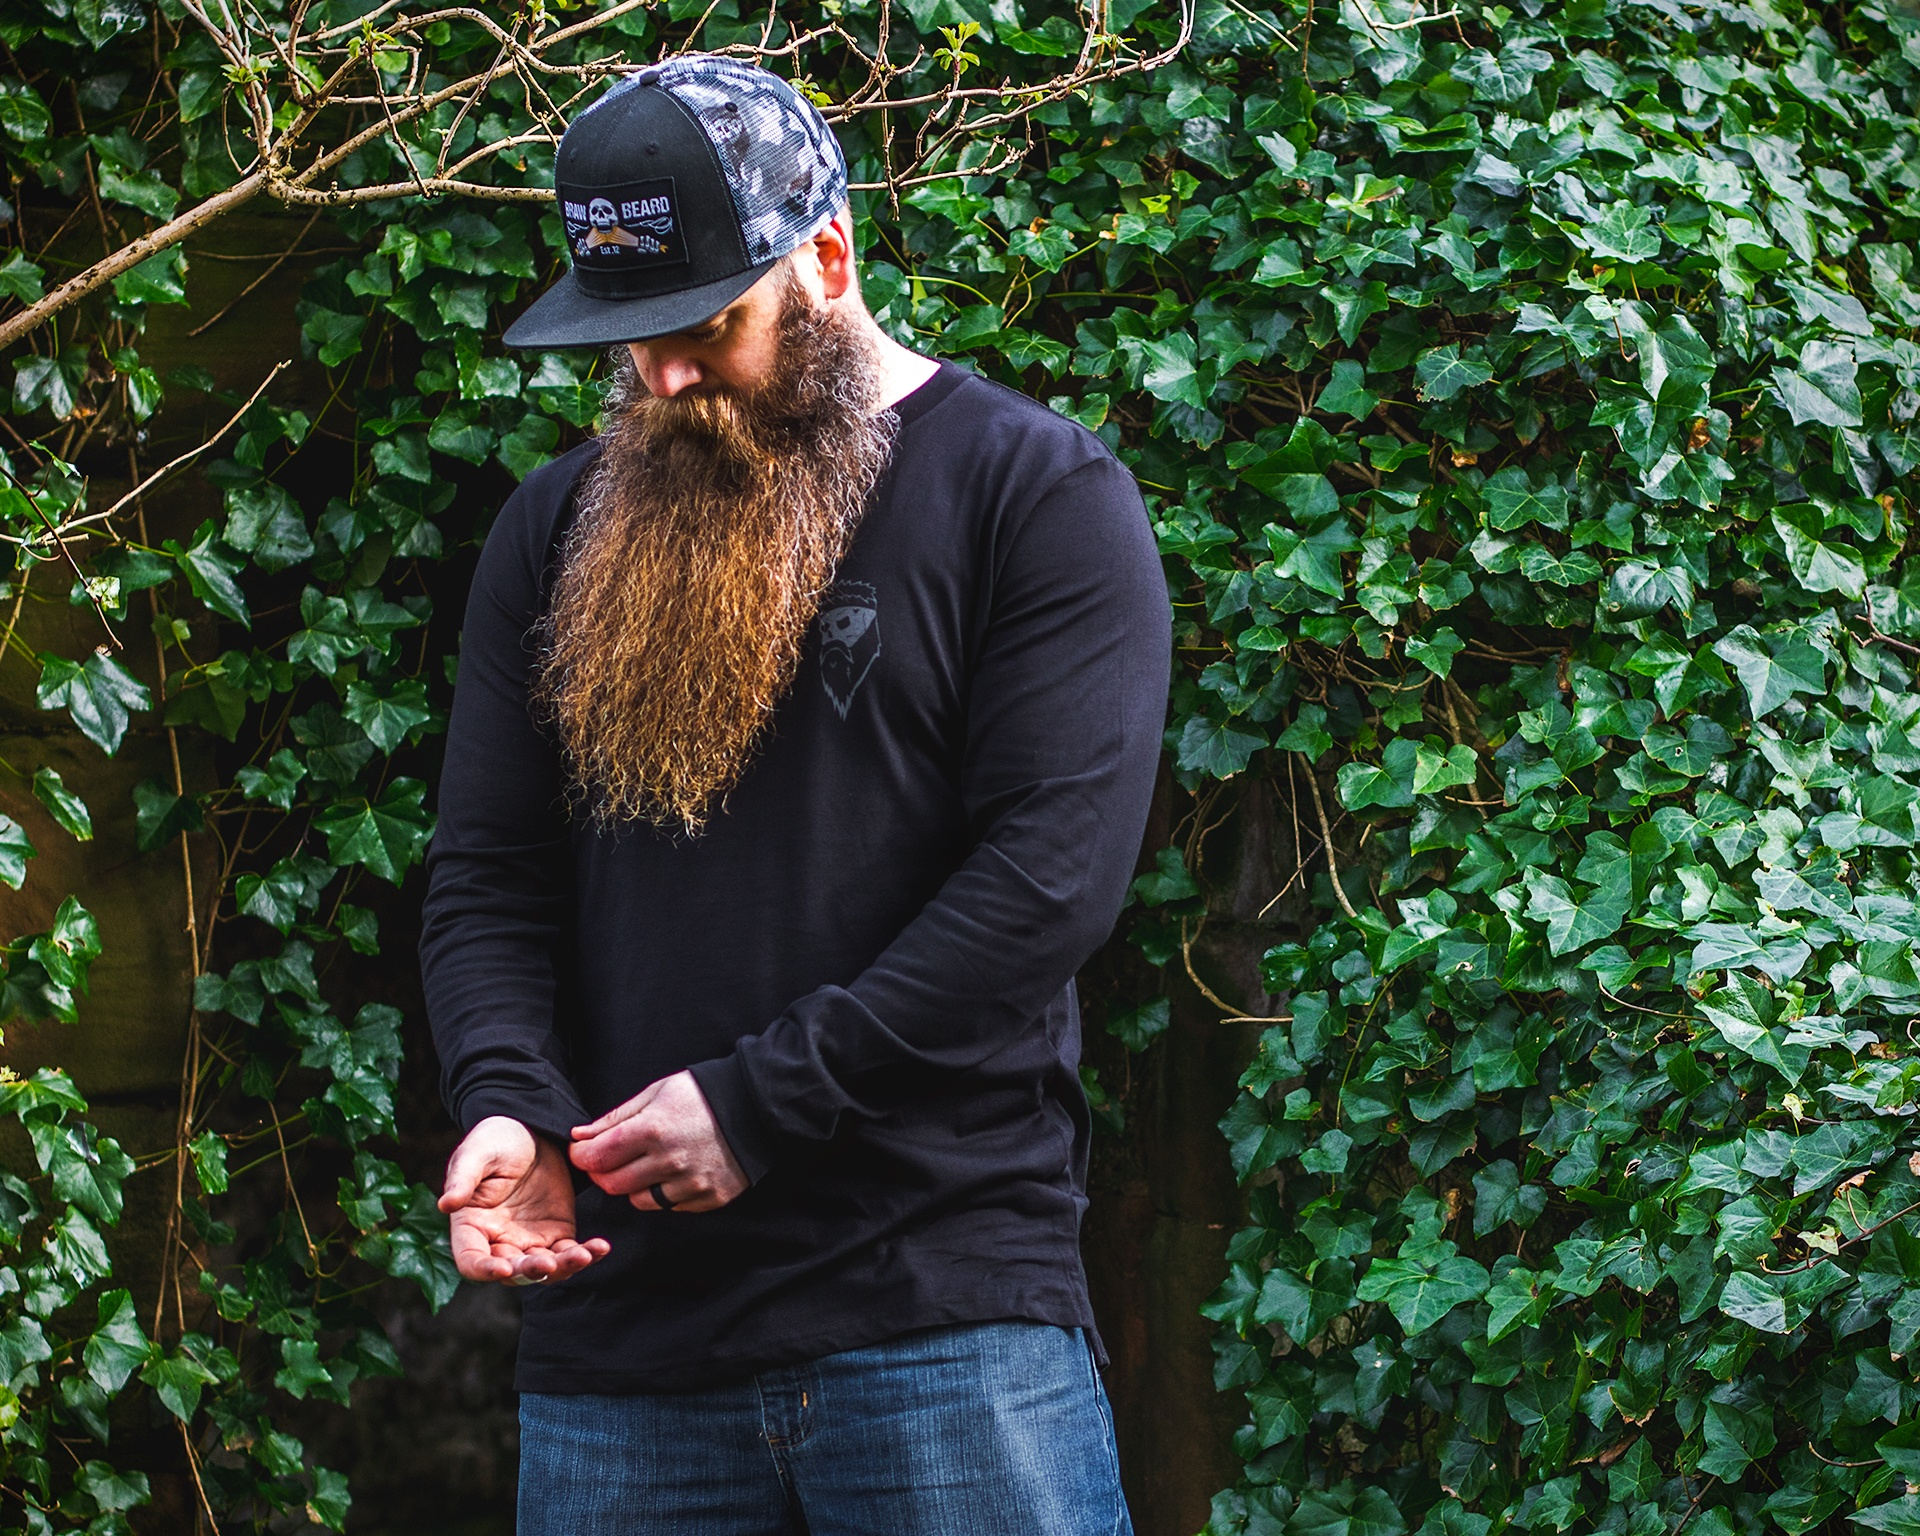 I've changed my beard care routine with COVID-19 circulating